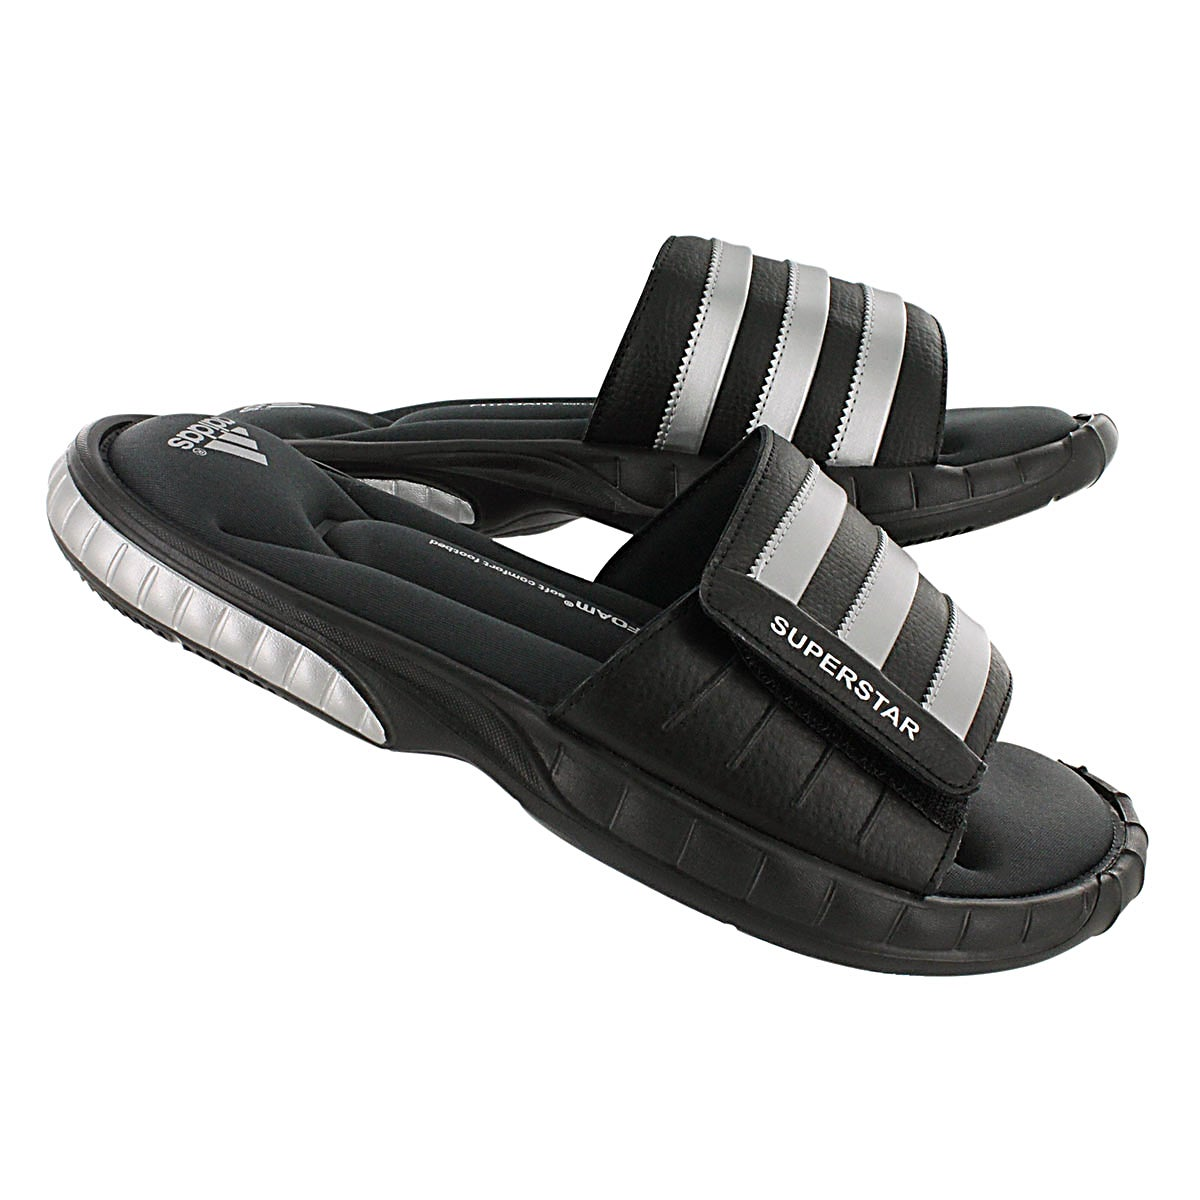 Mns Superstar 3G blk/slv/gry slide